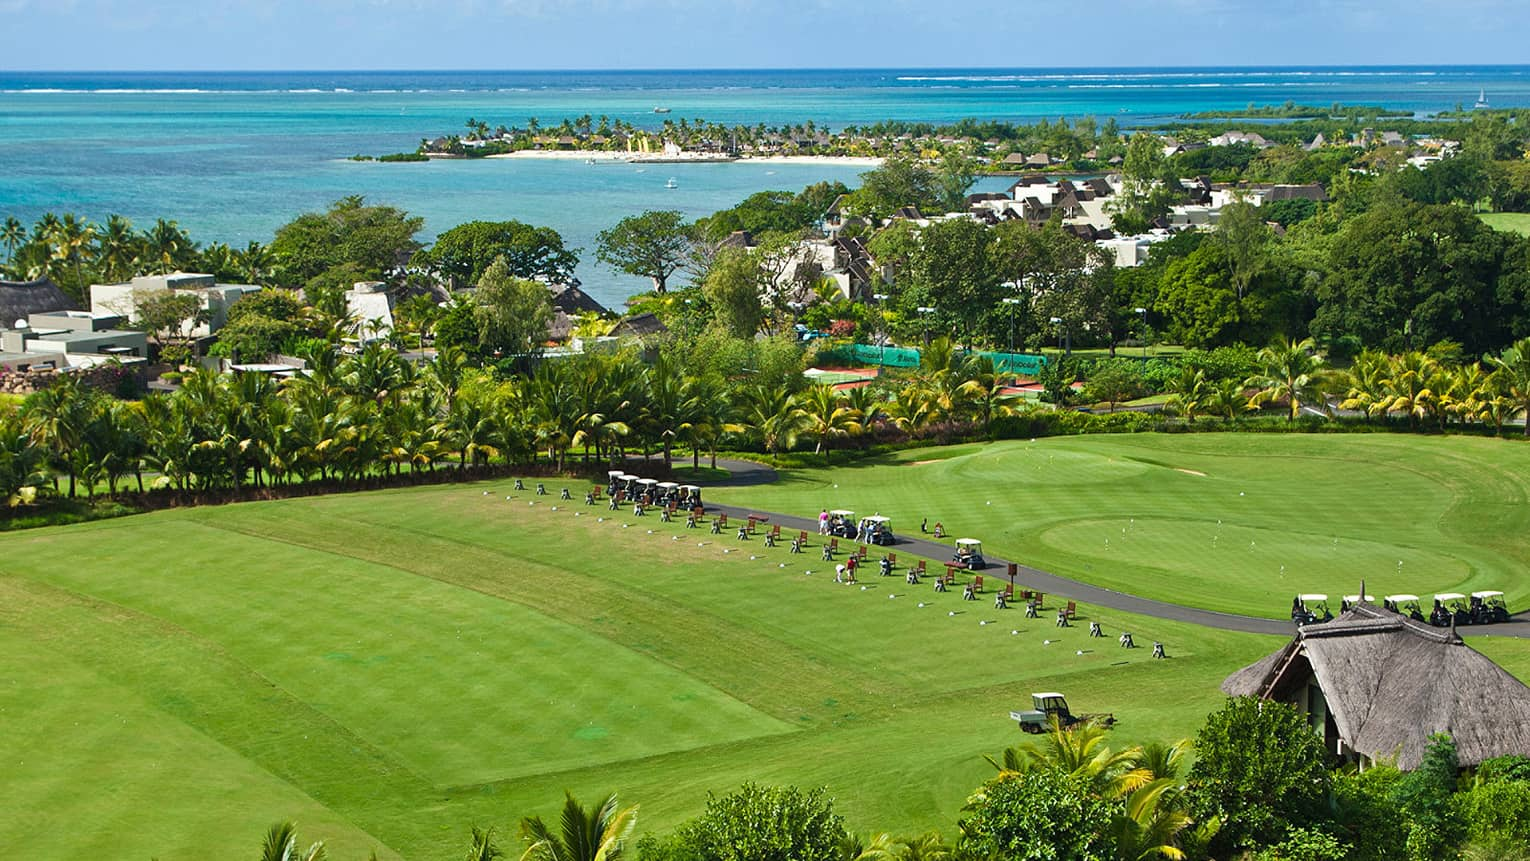 Looking down over large green lawn with rows of golf carts, trees and ocean